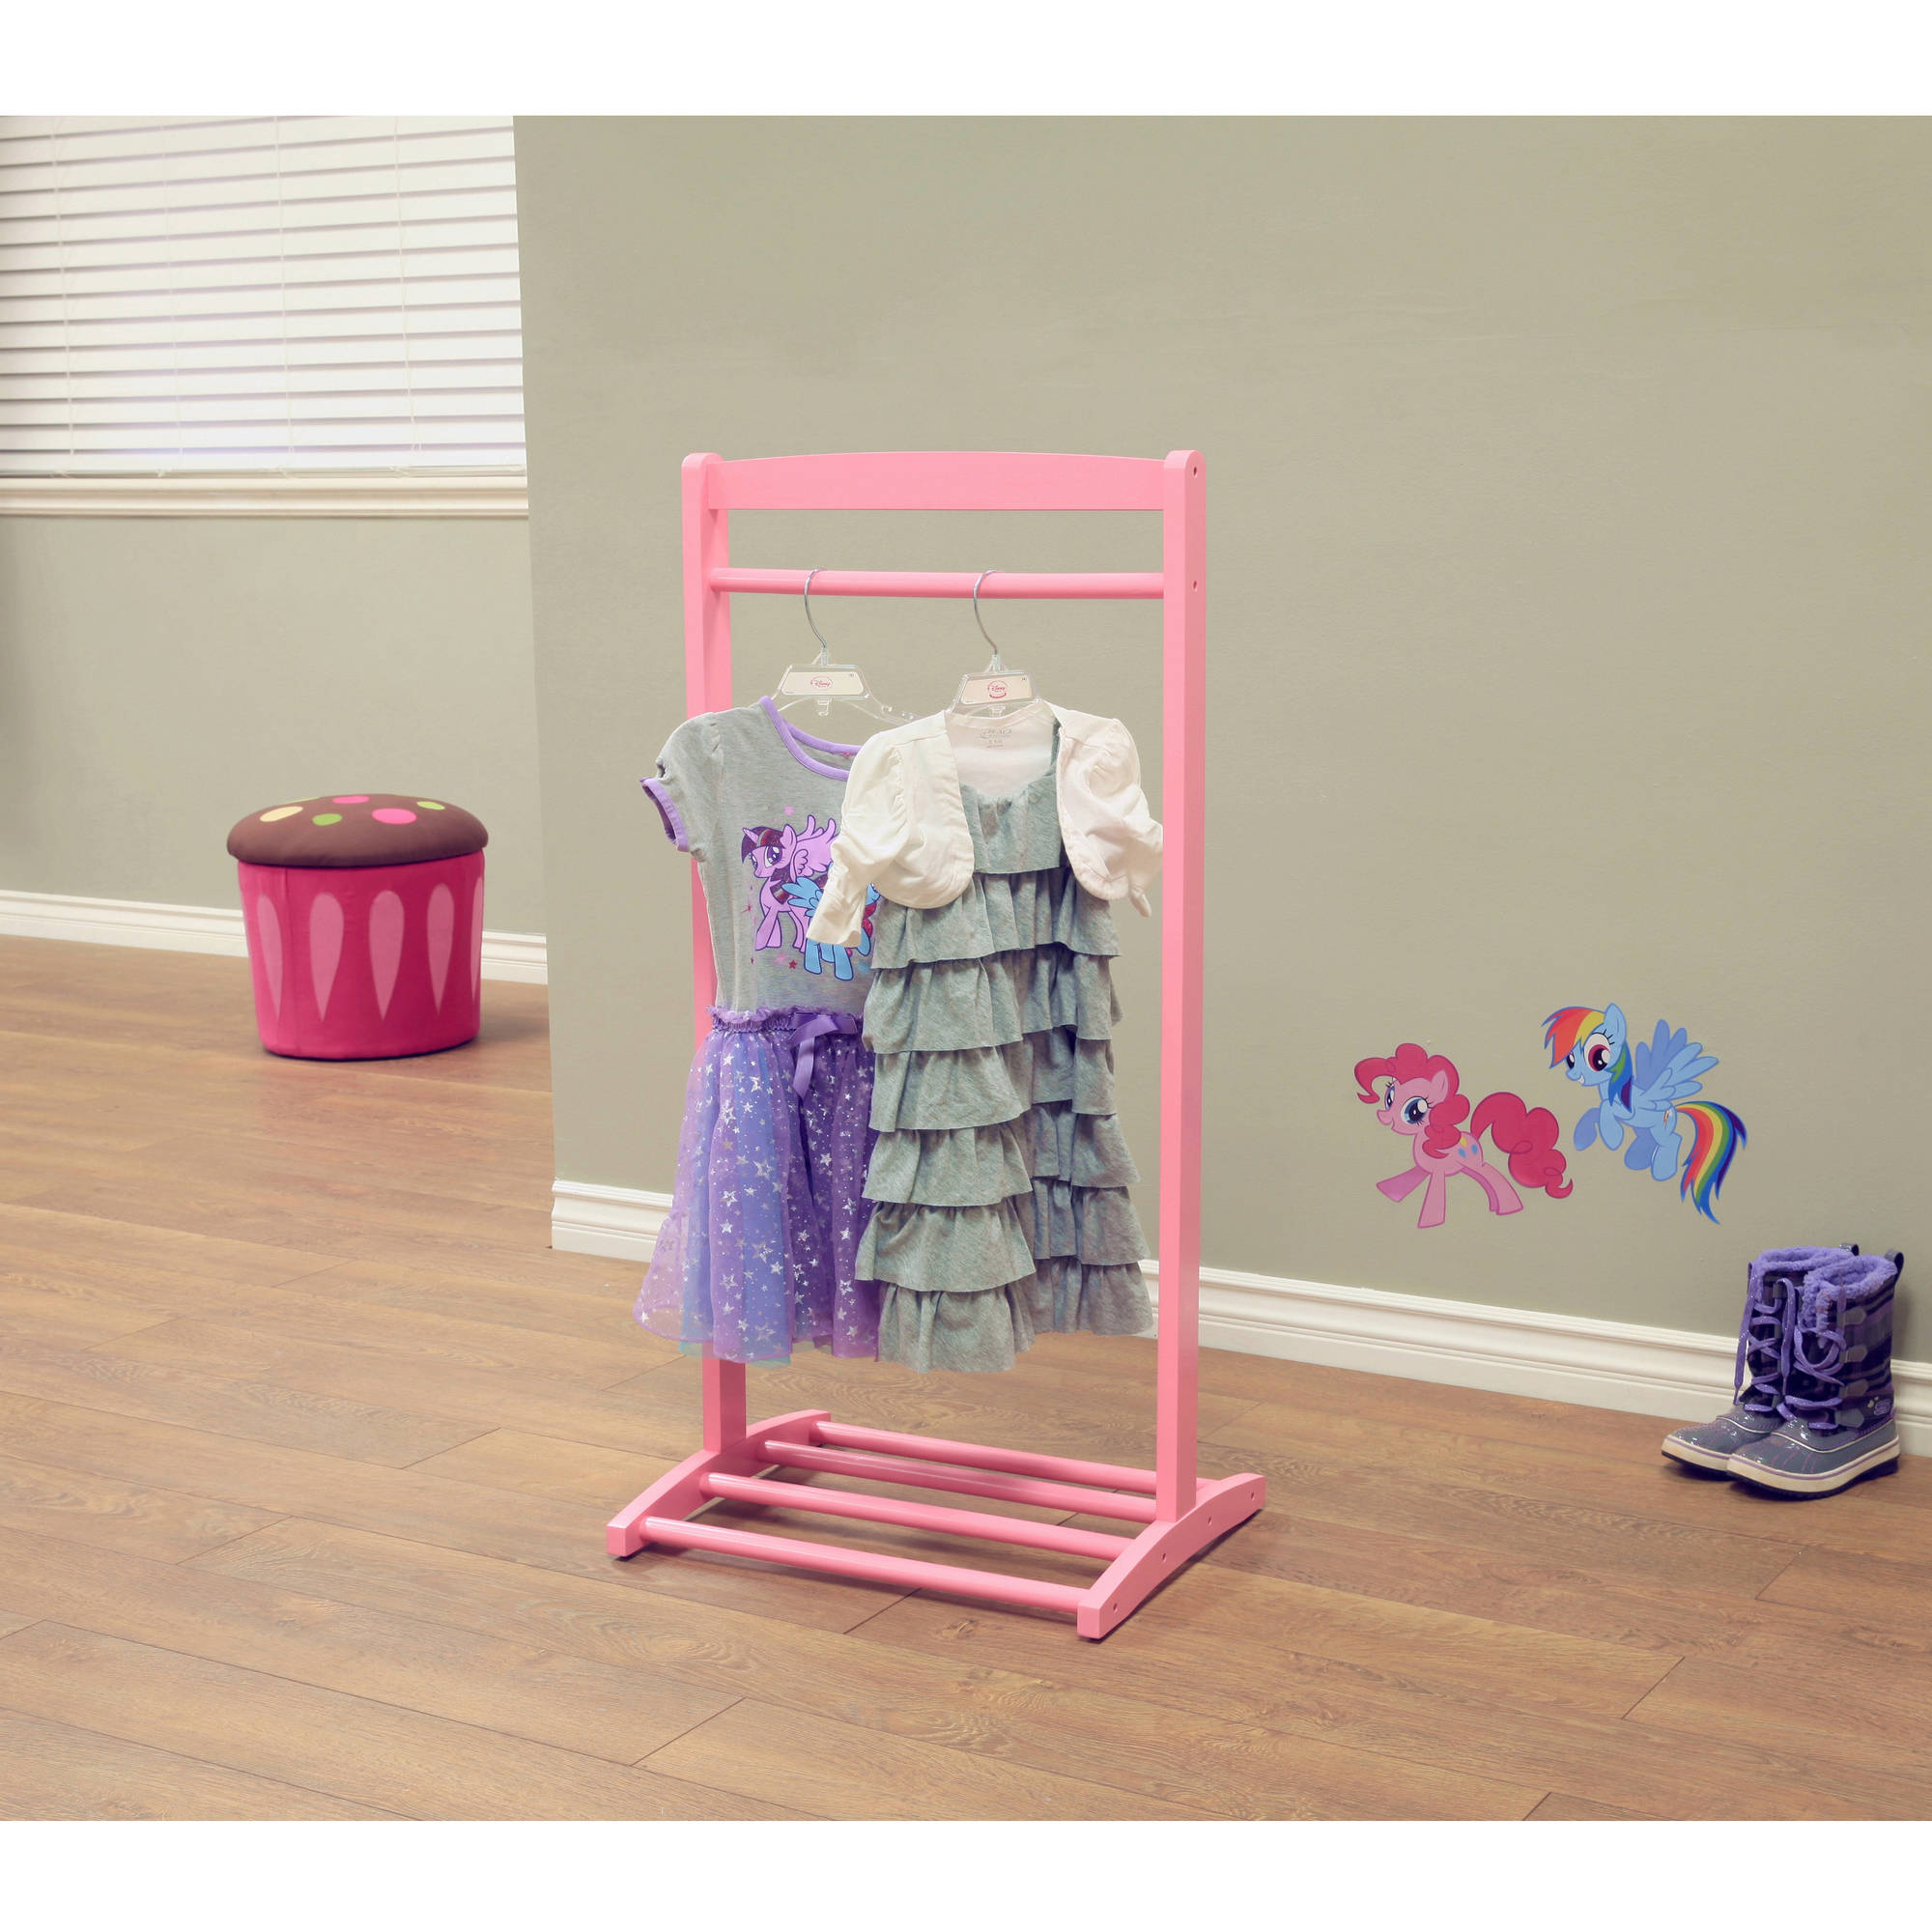 Home Craft Kids Clothes Rack Pink